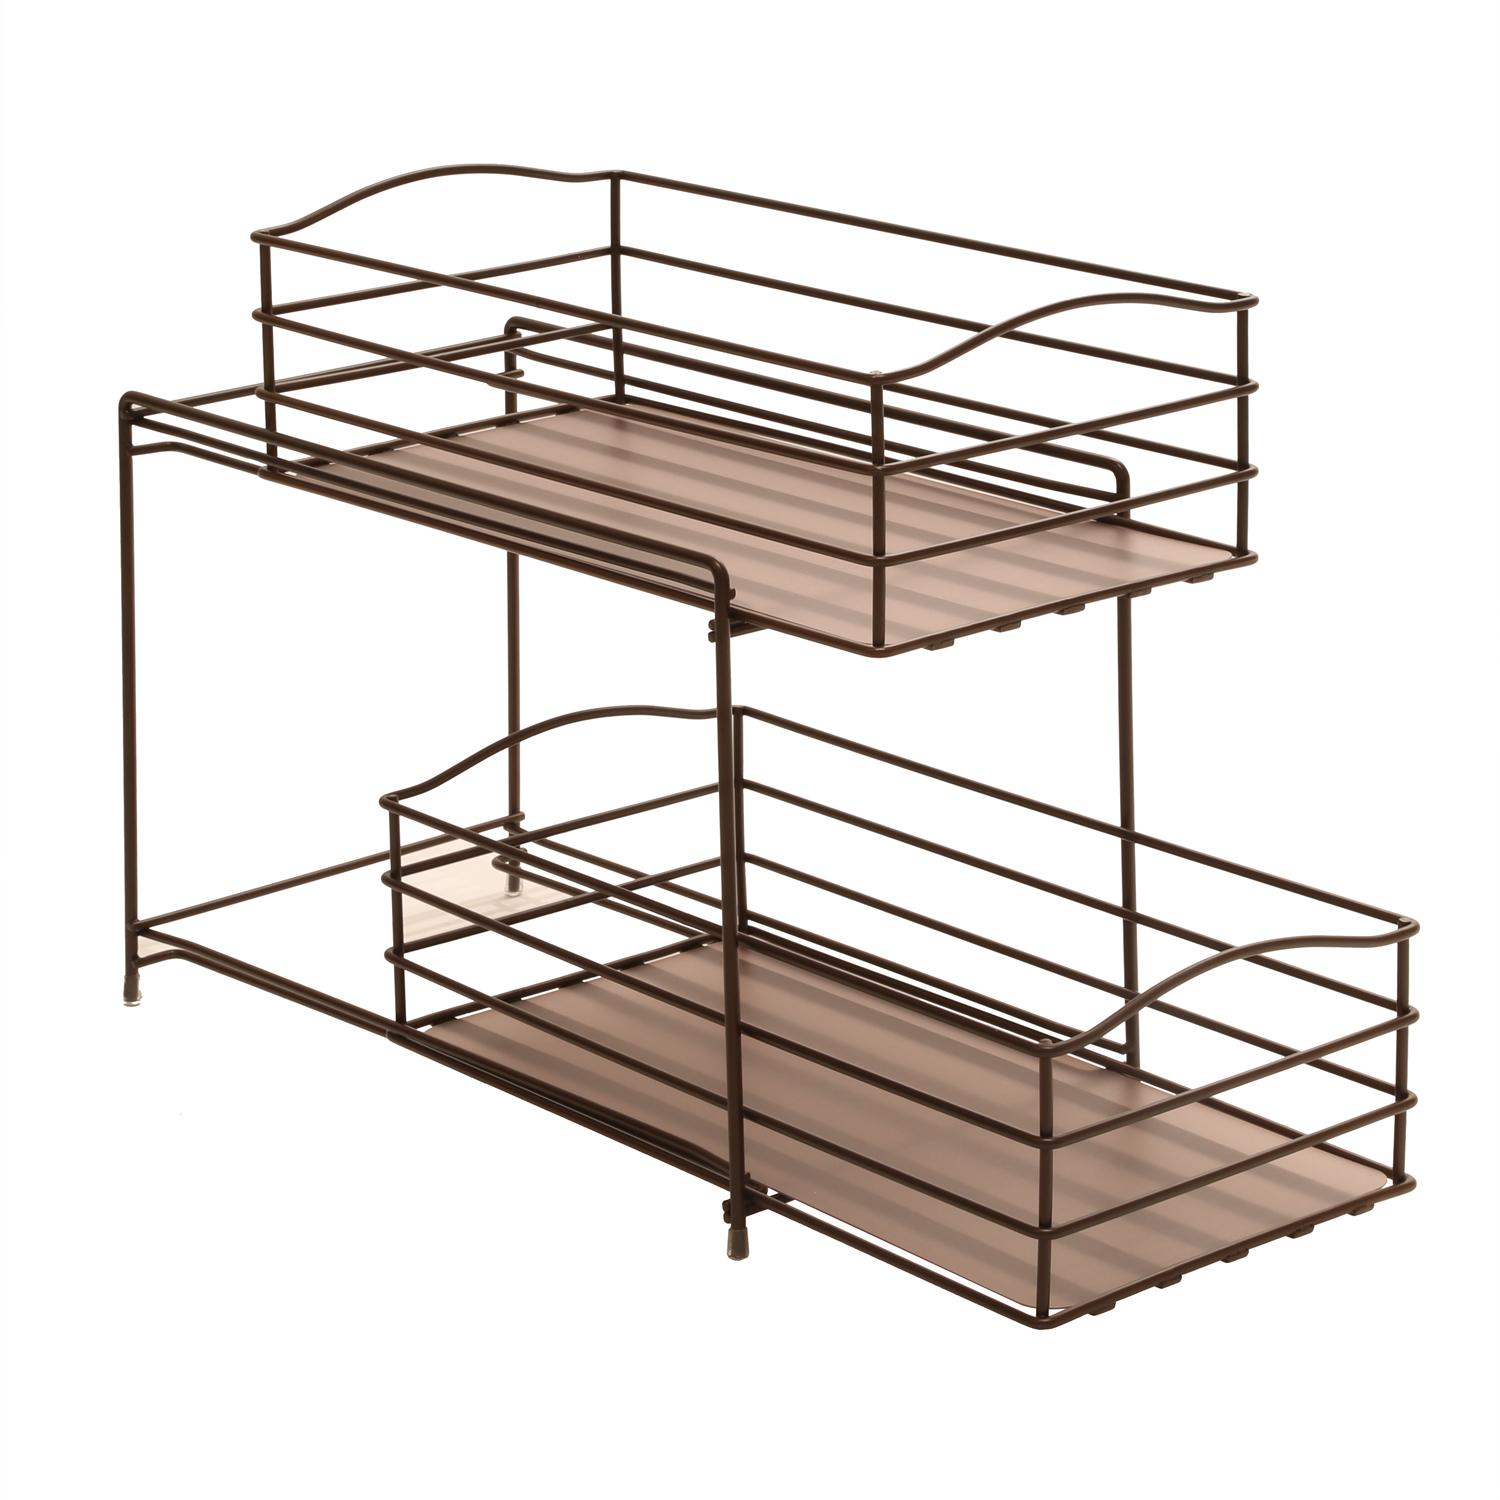 seville classics 2 tier sliding basket kitchen cabinet organizer bronze home kitchen. Black Bedroom Furniture Sets. Home Design Ideas